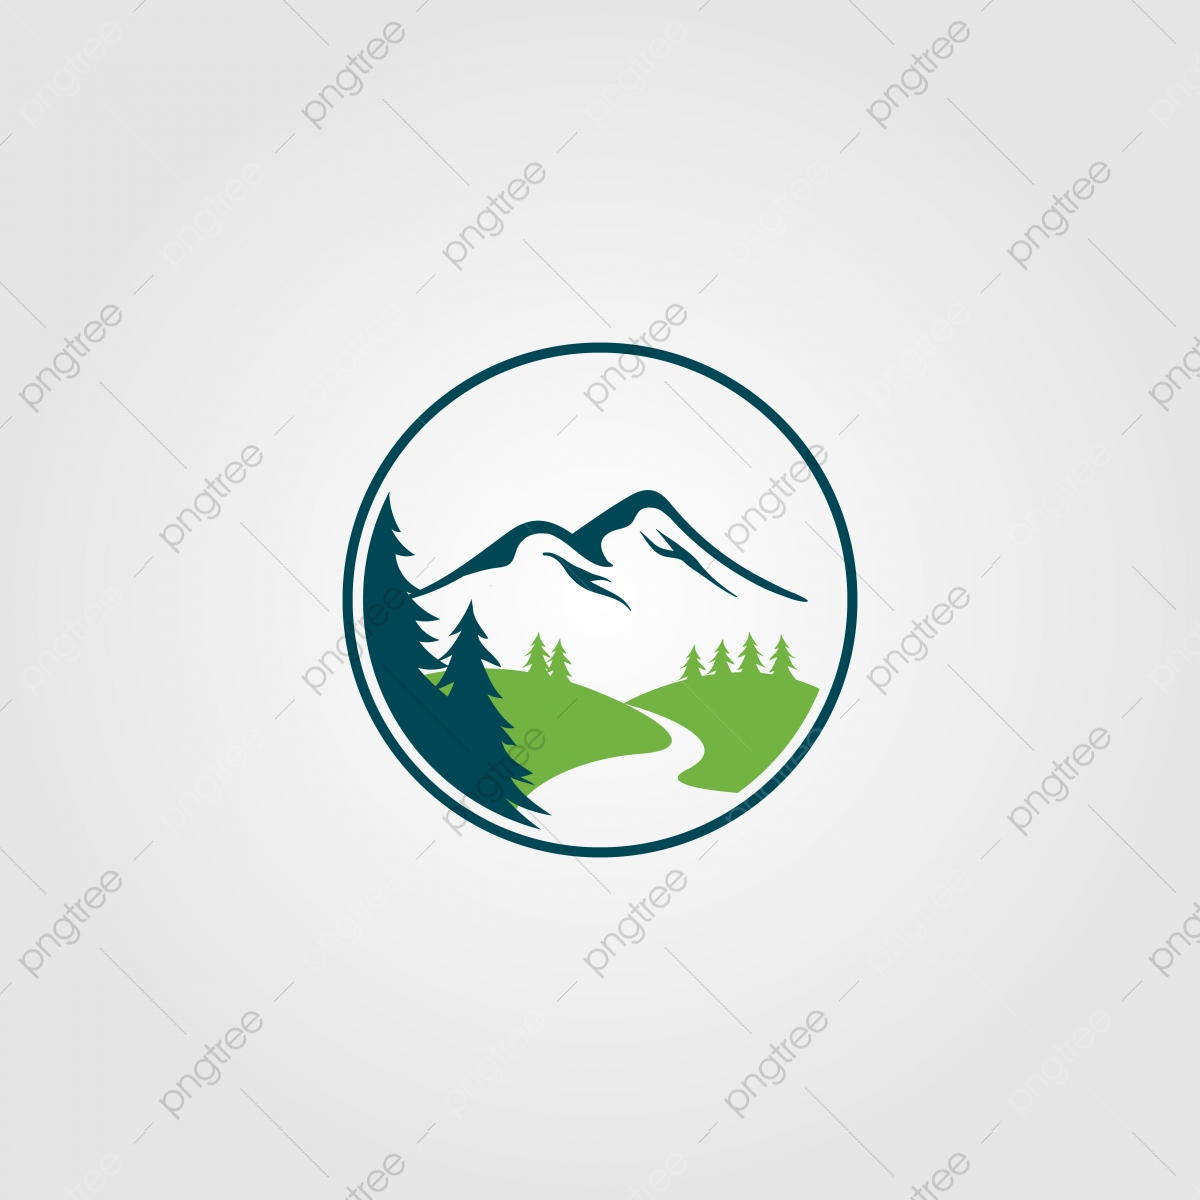 river logo png vector psd and clipart with transparent background for free download pngtree https pngtree com freepng adventure pine tree creek nature river logo vector design 5094895 html